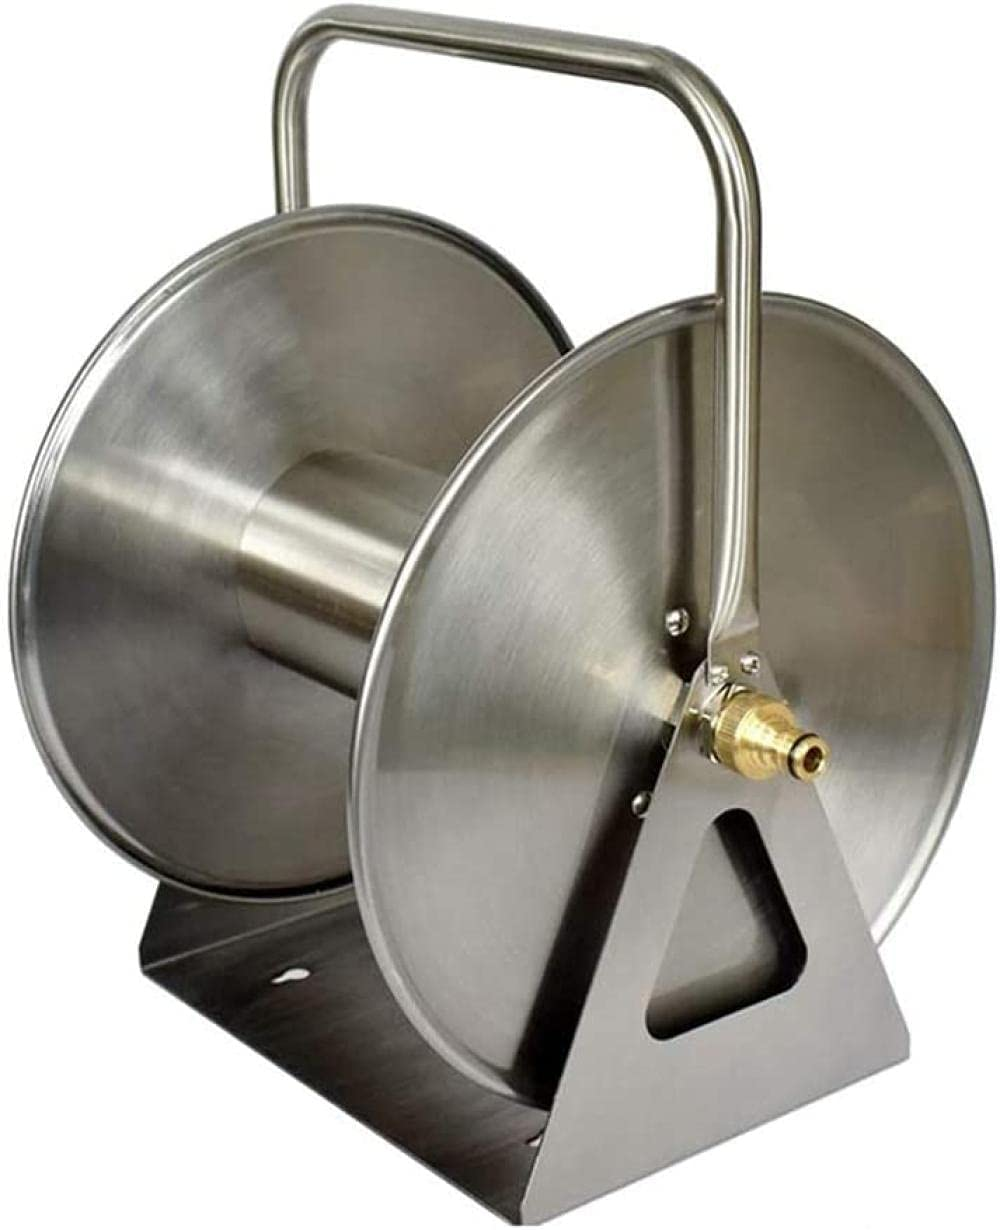 Stainless Safety and 67% OFF of fixed price trust Steel Hose Reel Wall Mounted Decorative Floor Garden